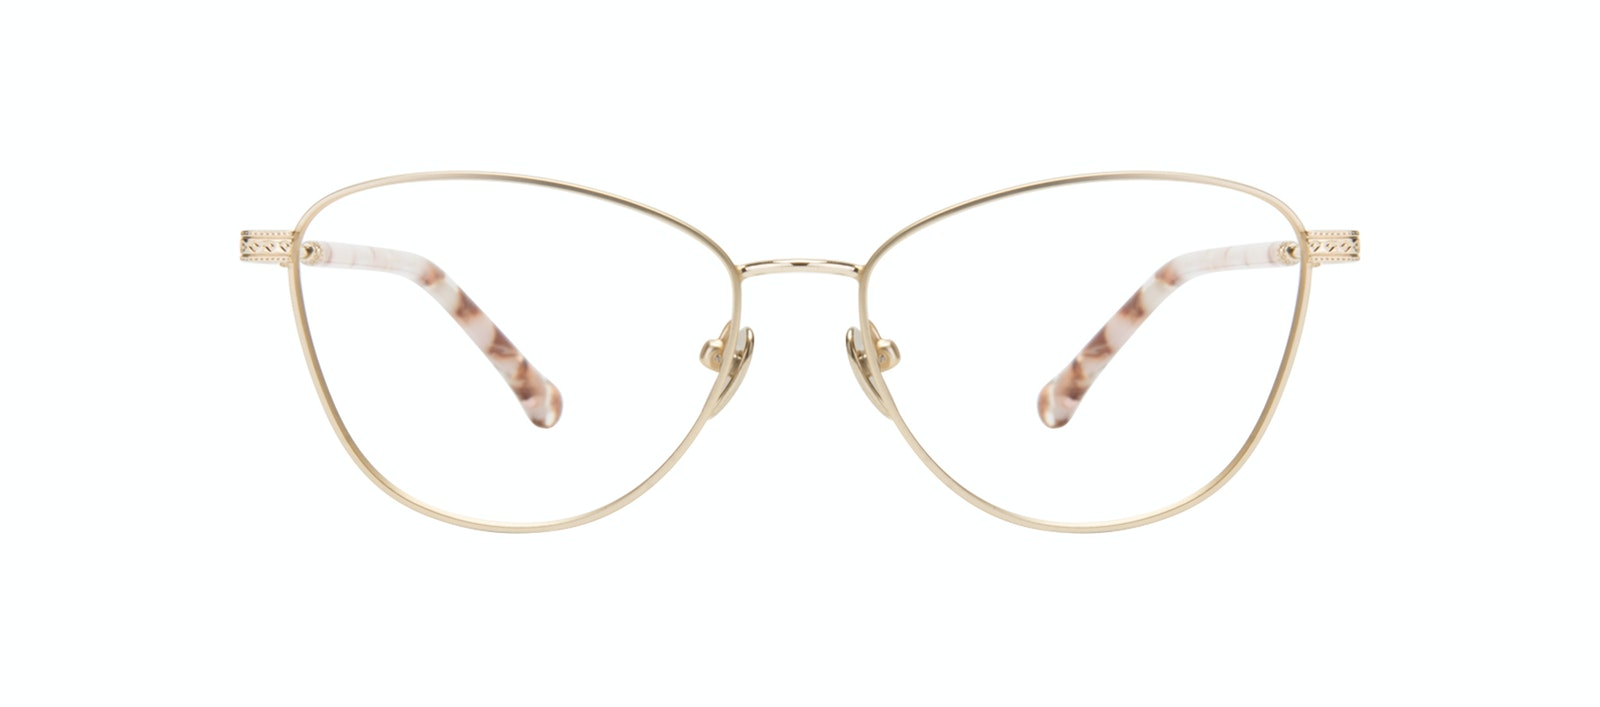 Affordable Fashion Glasses Cat Eye Eyeglasses Women Bow Golden Quartz Front